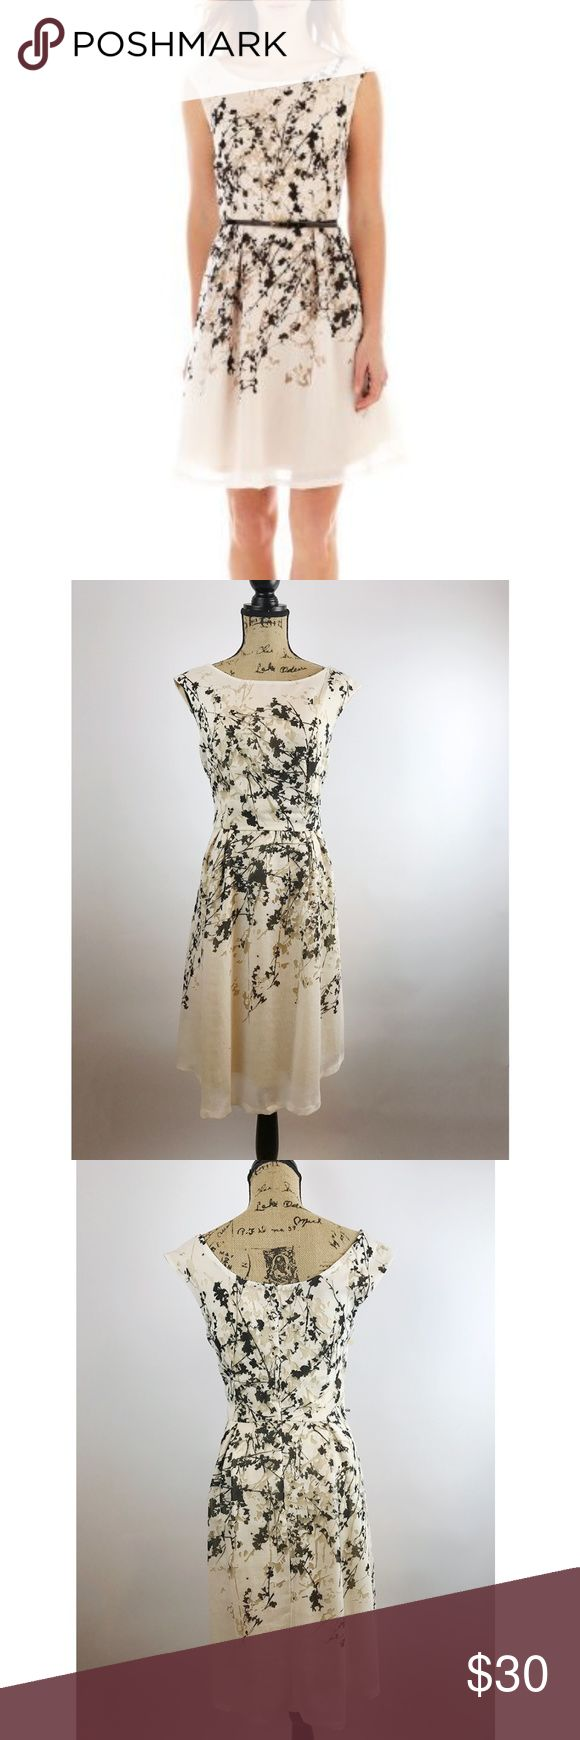 "Liz Claiborne Sleeveless Splatter Print Dress - 12 Effortless style awaits you with this beautiful dress featuring a playful burnout splatter print. You can wear with your favorite belt.  In excellent pre-owned condition.   Pit to Pit: 20"" Length: 38"" Waist: 15"" Liz Claiborne Dresses"